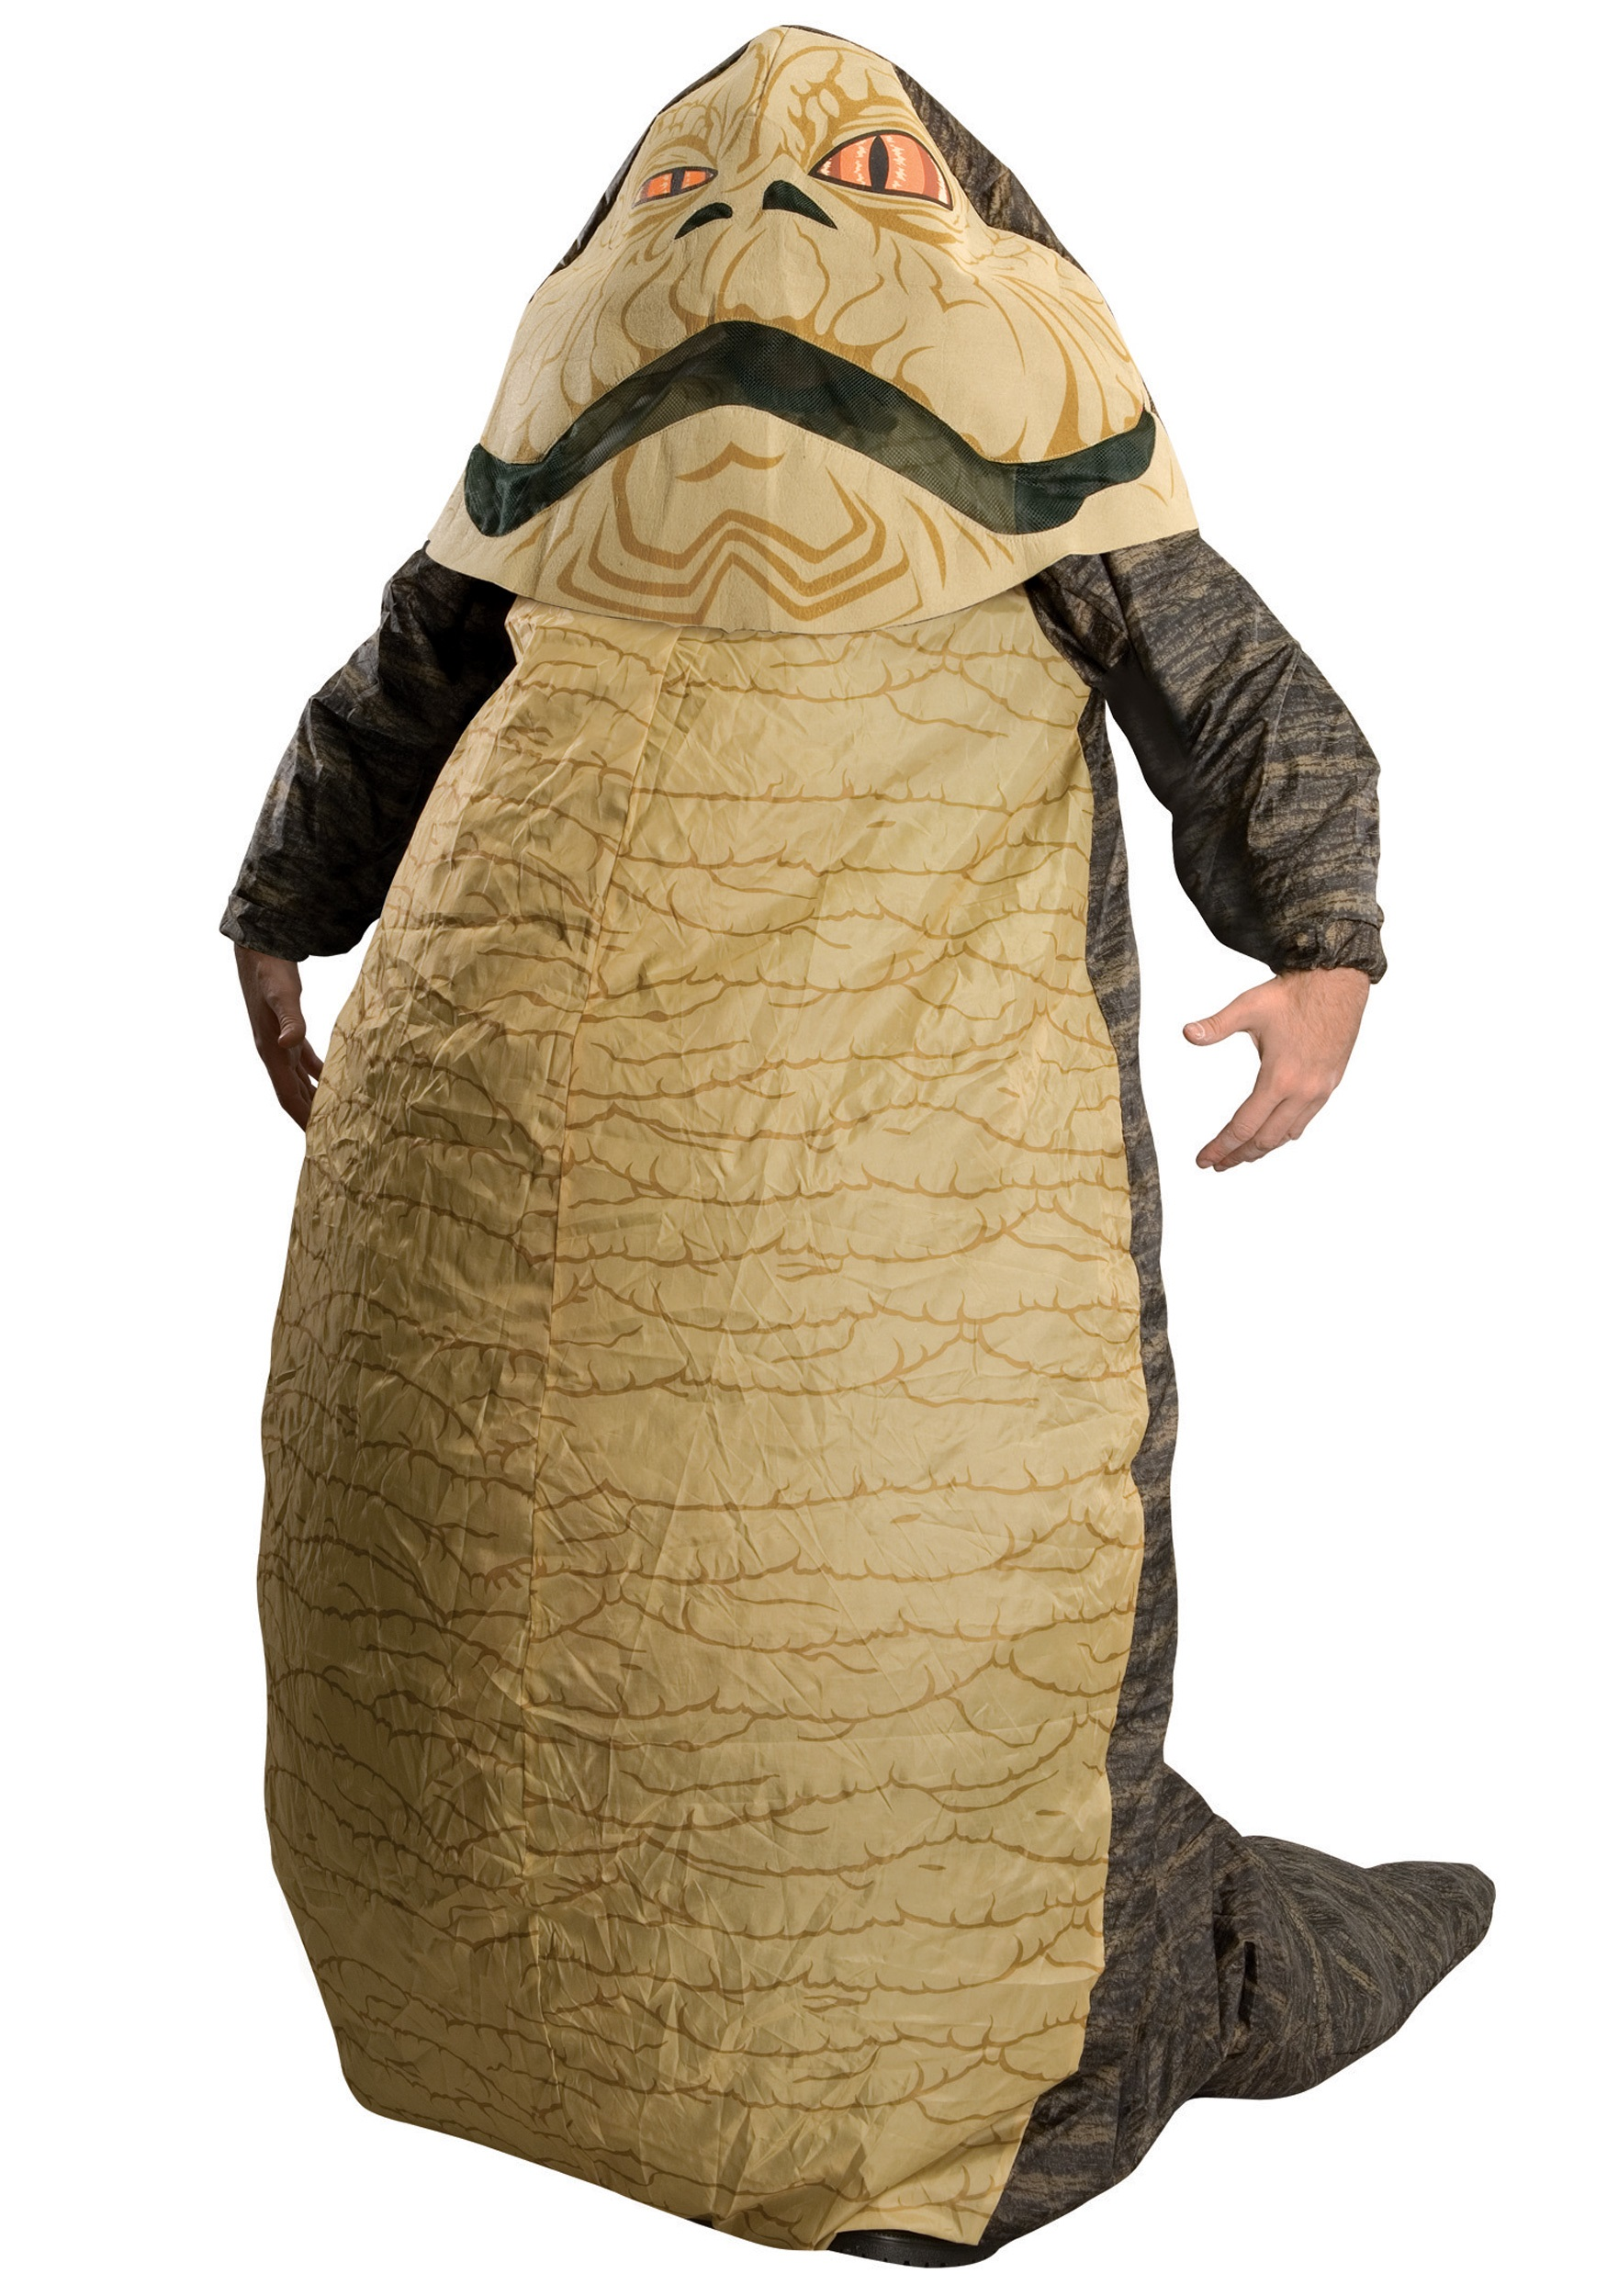 how to make jabba the hutt